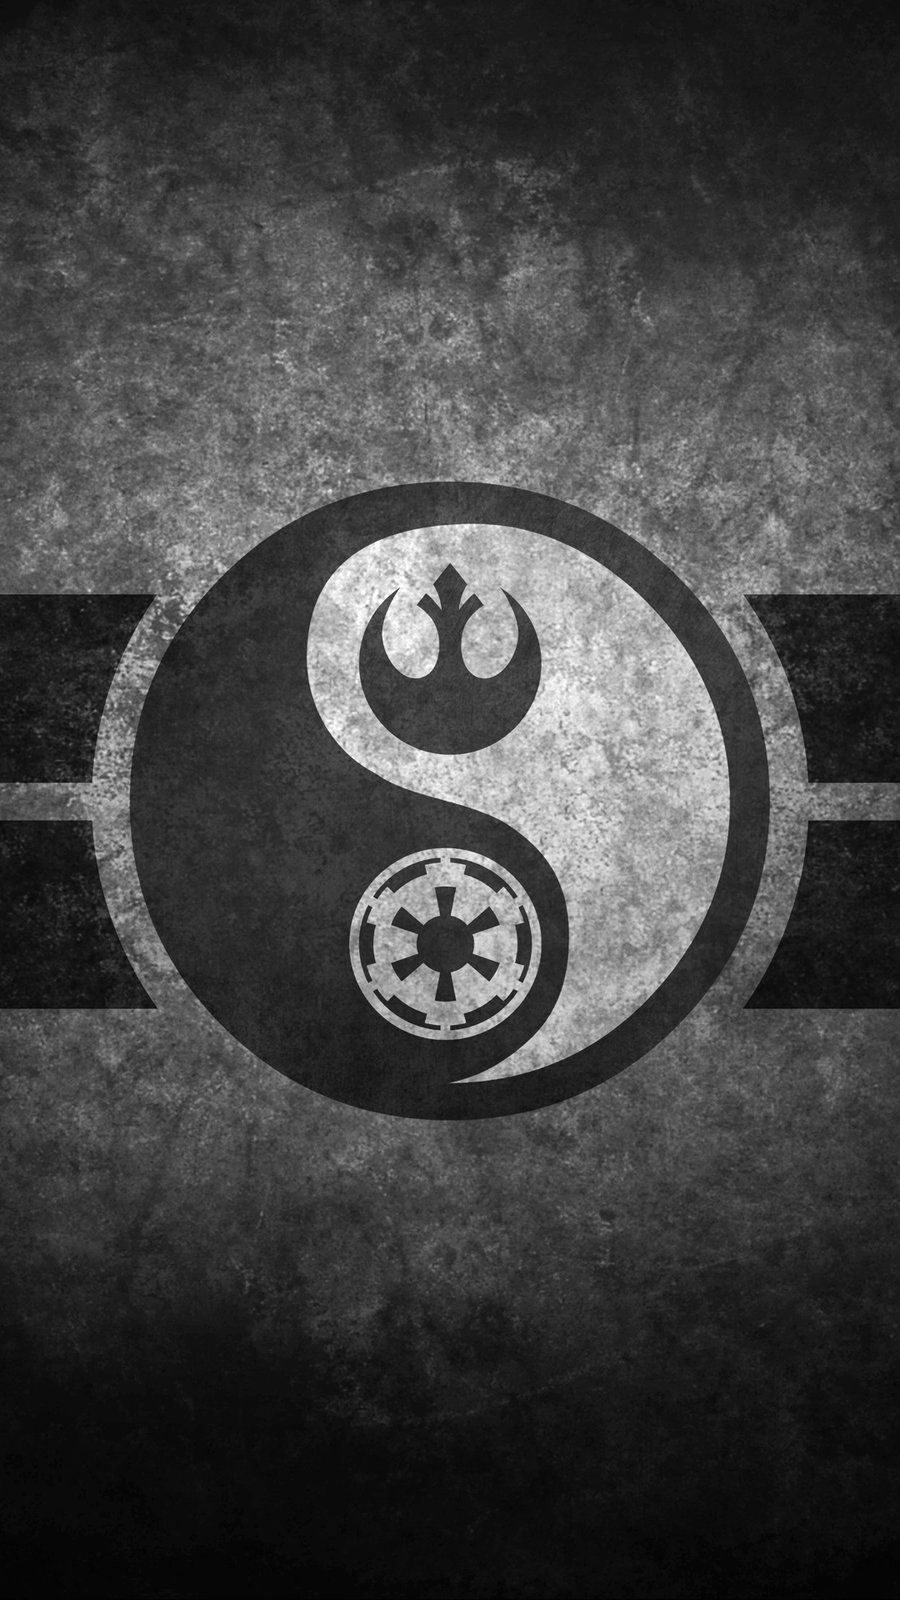 Star Wars Iphone Icons Wallpapers On Wallpaperdog